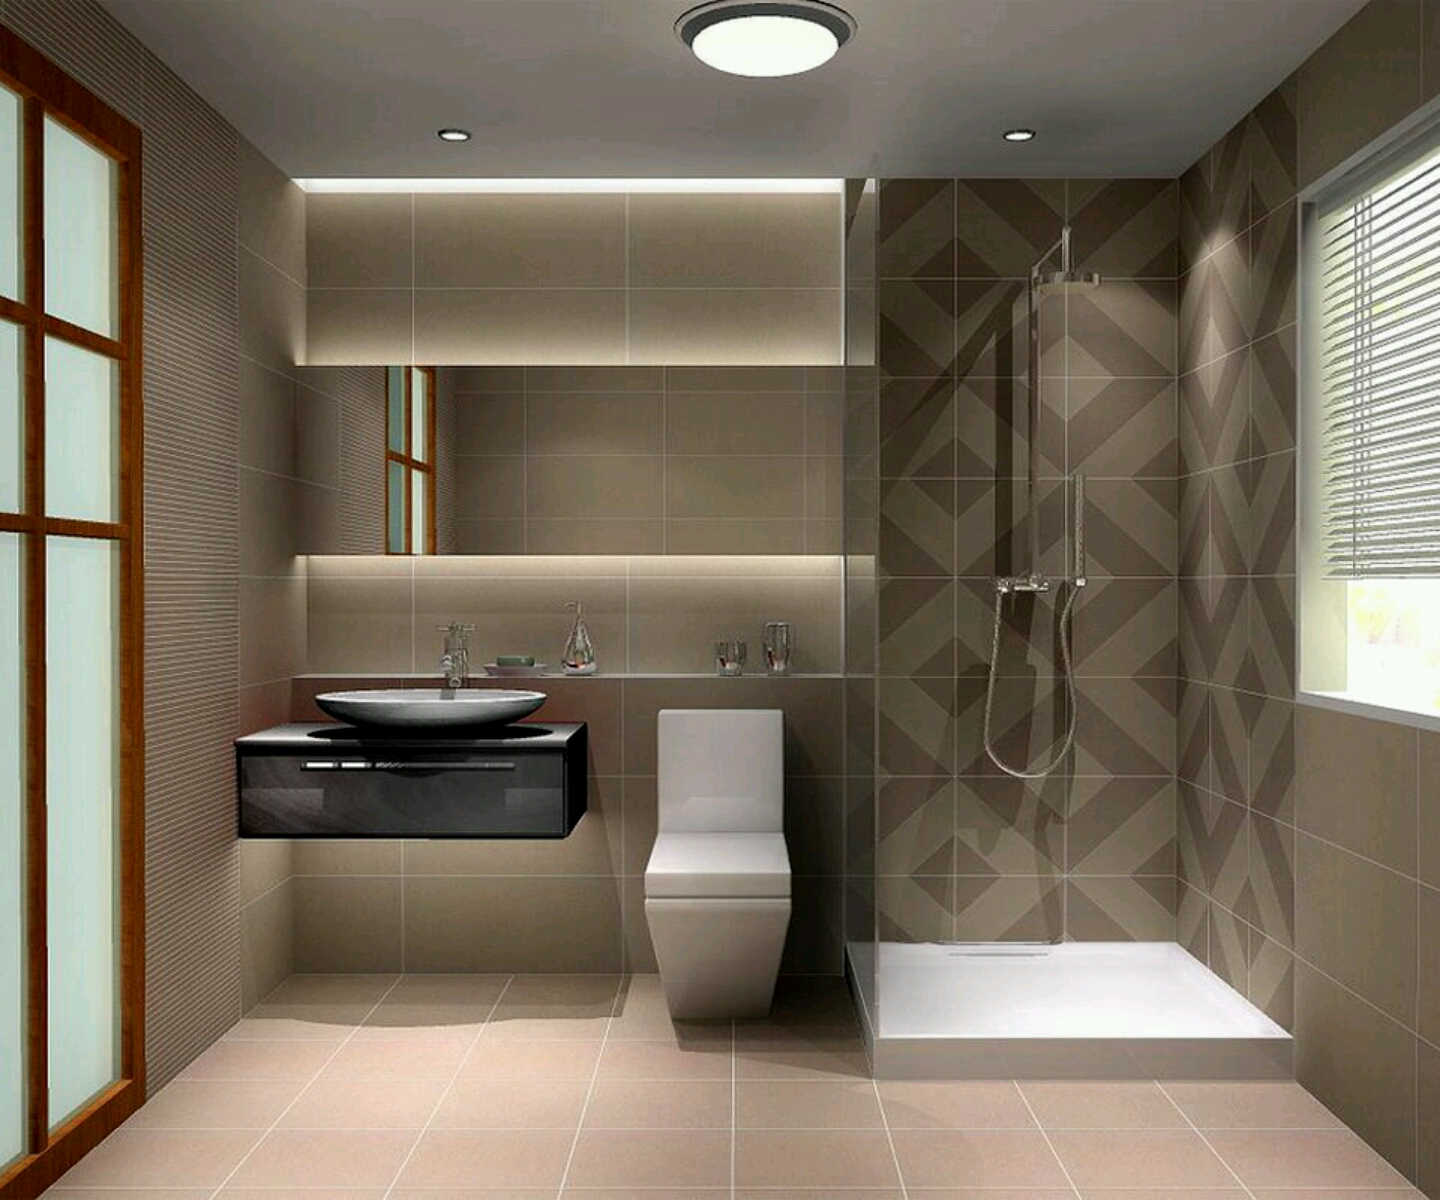 Small modern bathroom design 2017 grasscloth wallpaper for New bathroom design